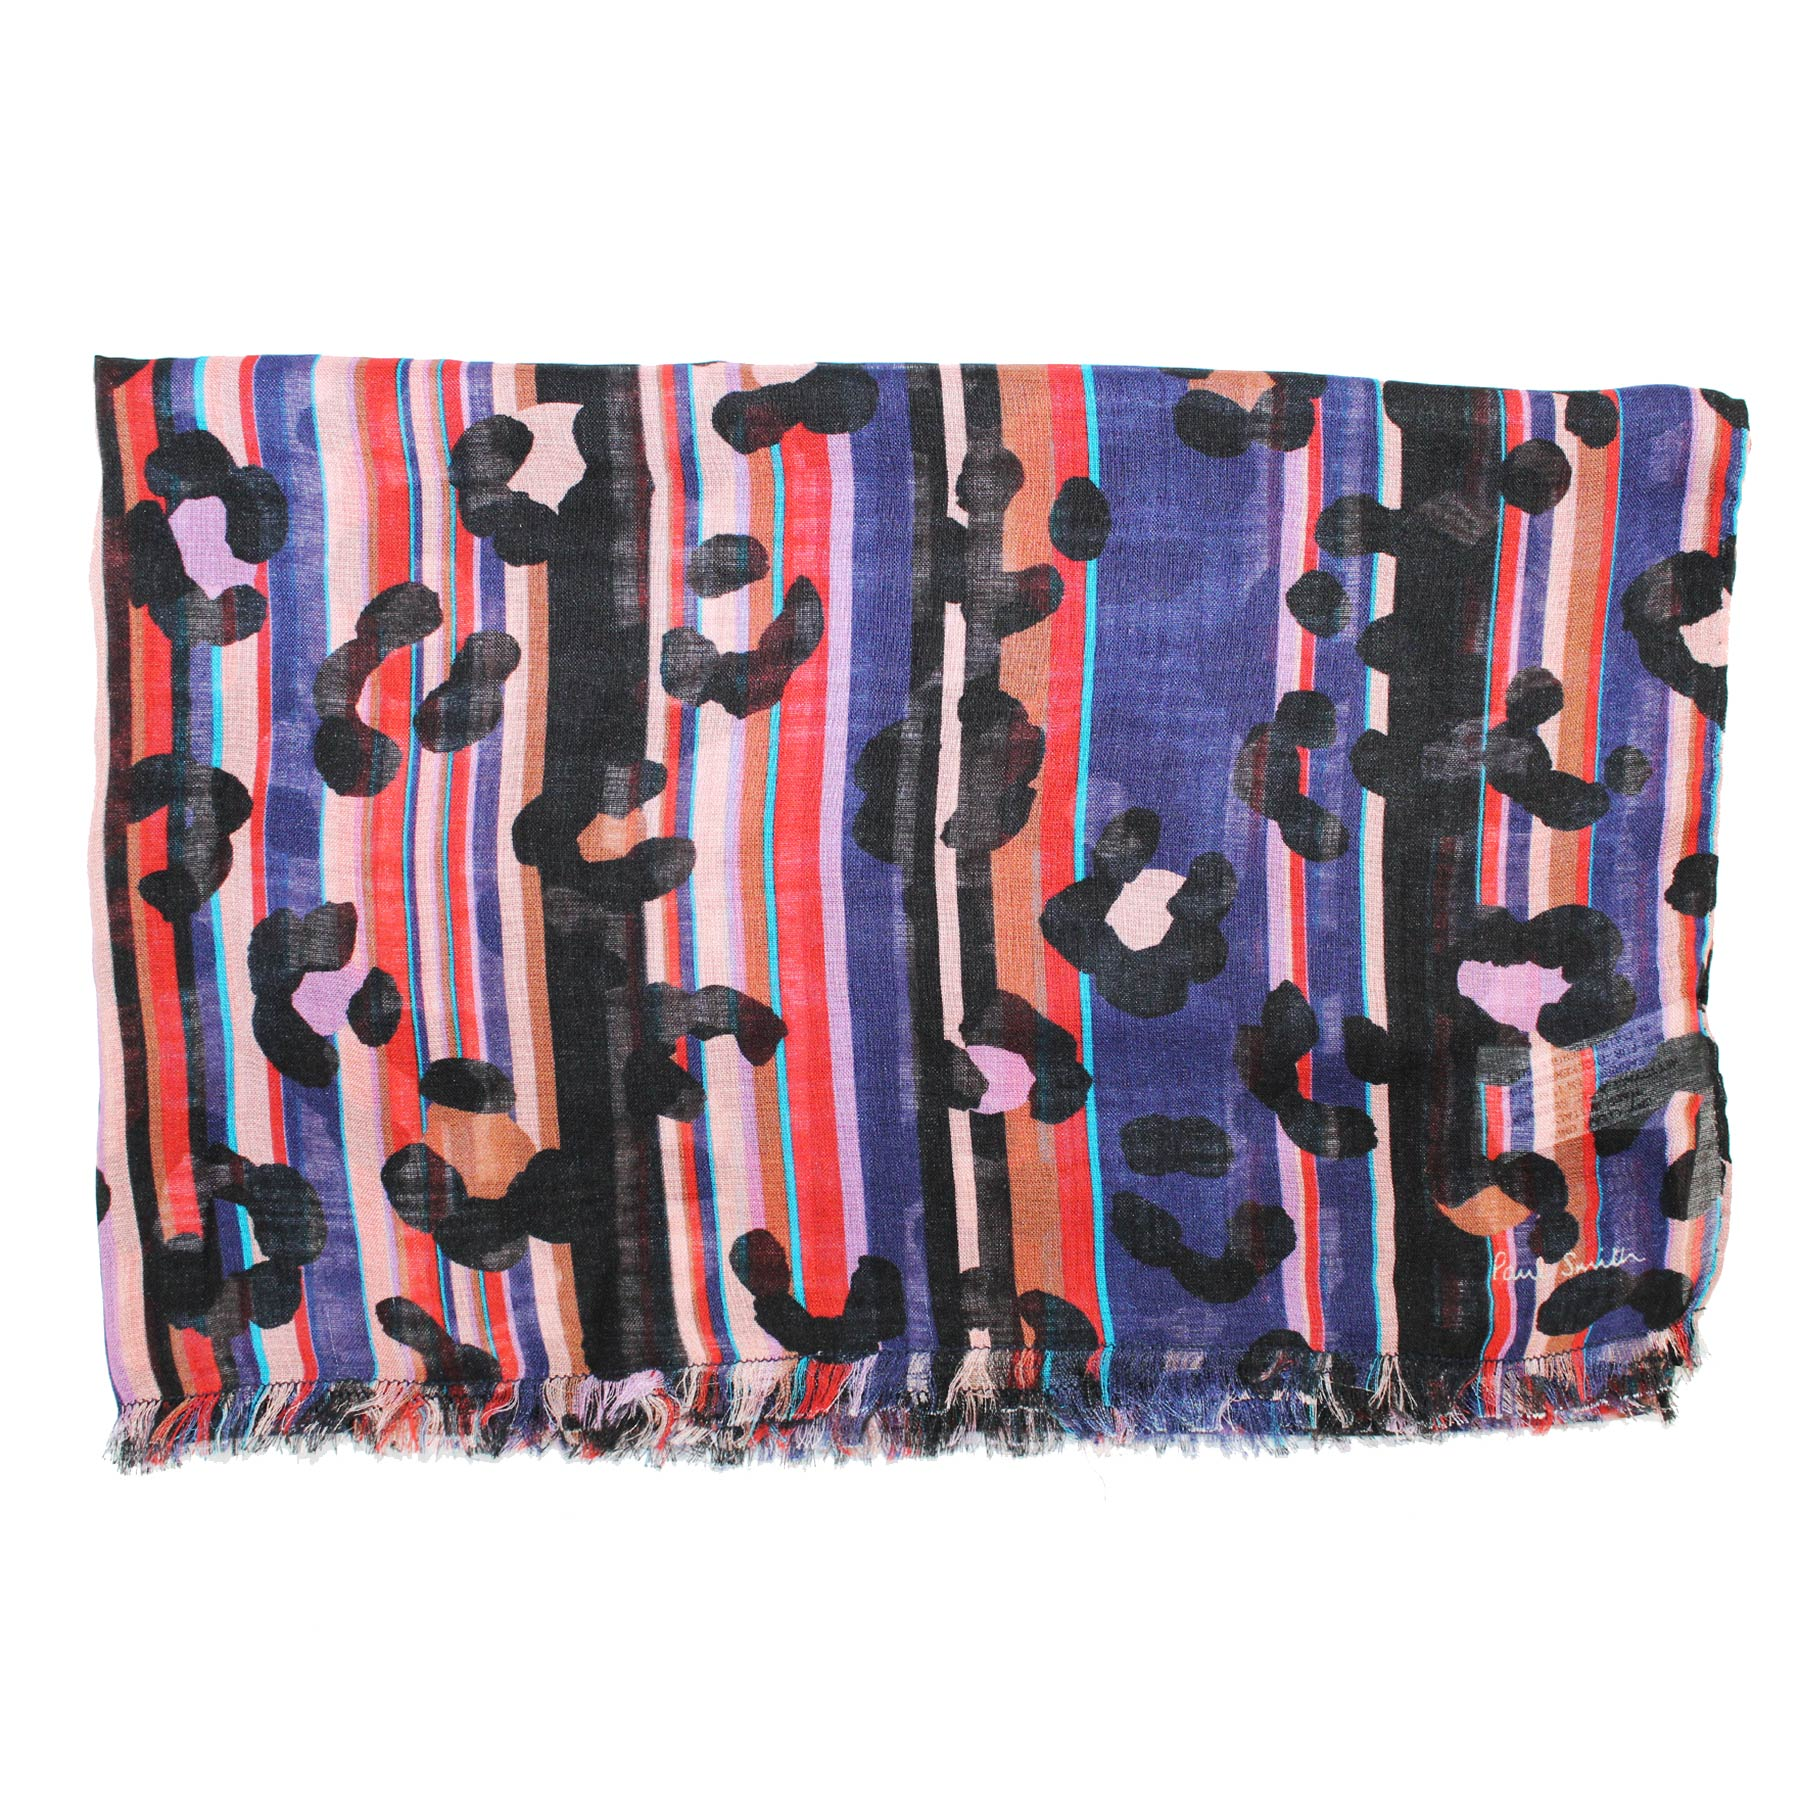 Paul Smith Scarf Purple Red Panther Print & Stripes - Modal Silk Shawl SALE